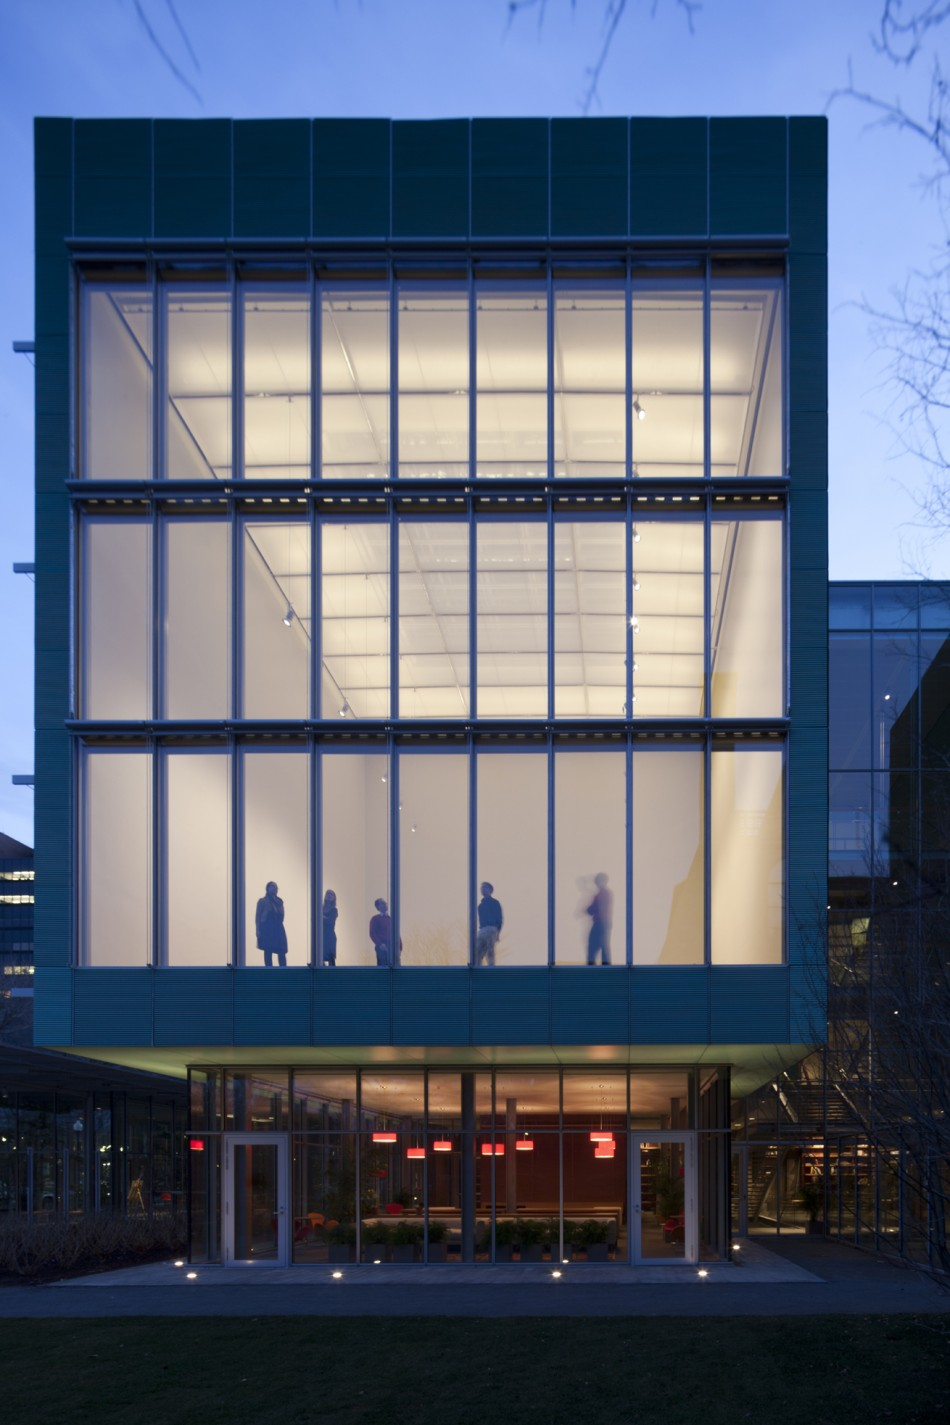 Architecture new building design by renzo piano i lobo - Latest building designs and plans ...